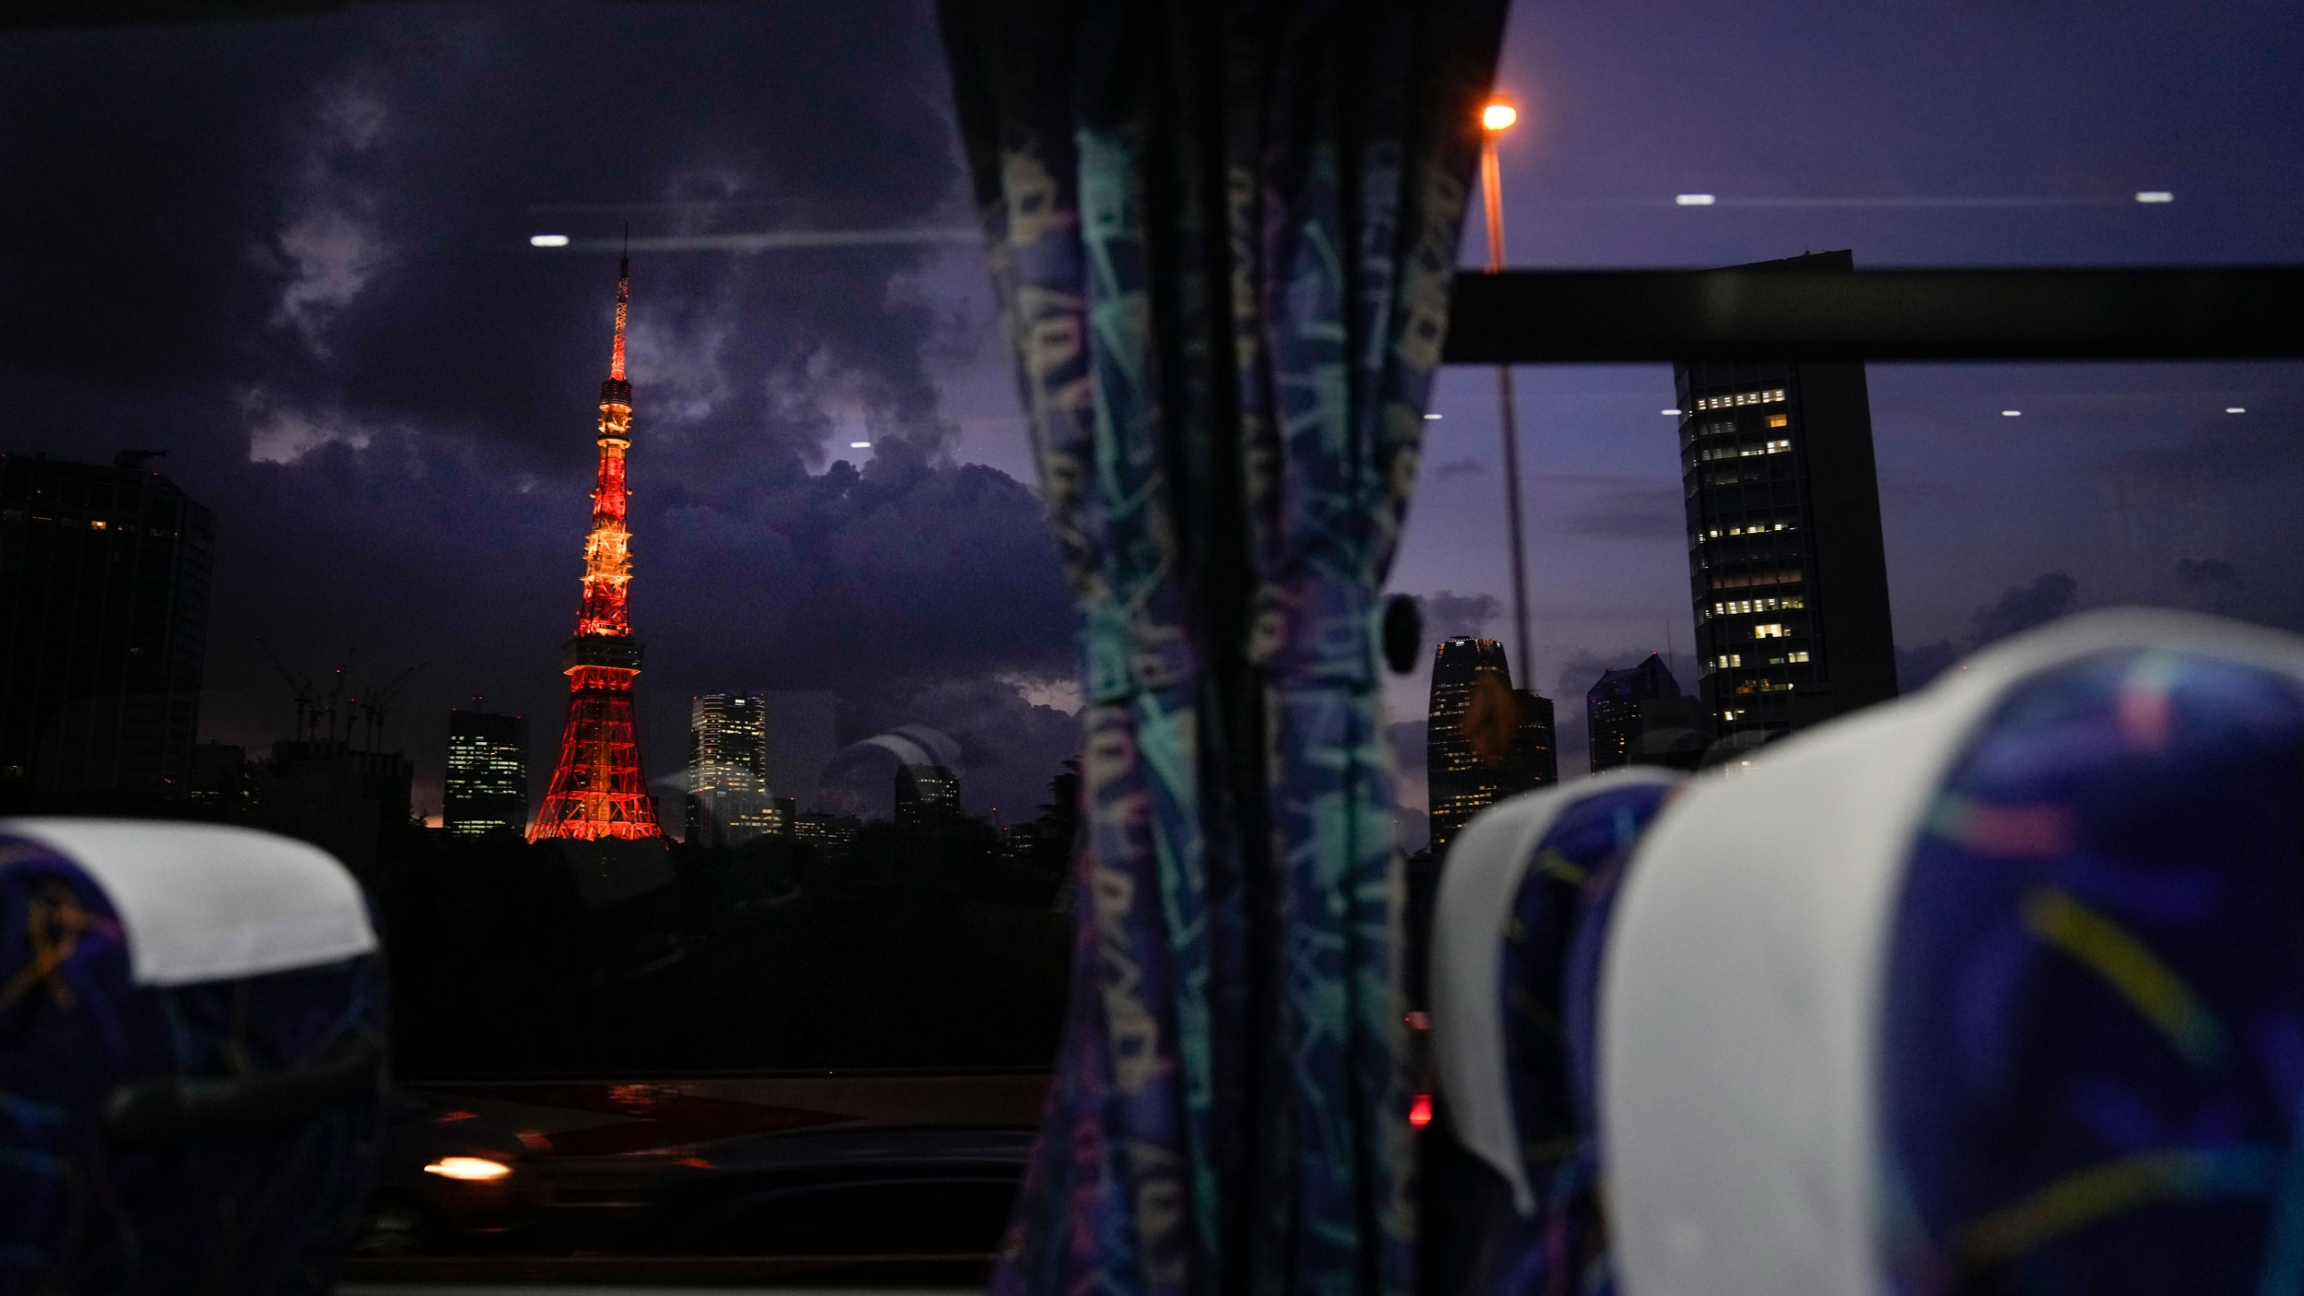 The Tokyo Tower is shown in the distance illuminated with red and orange lighting.